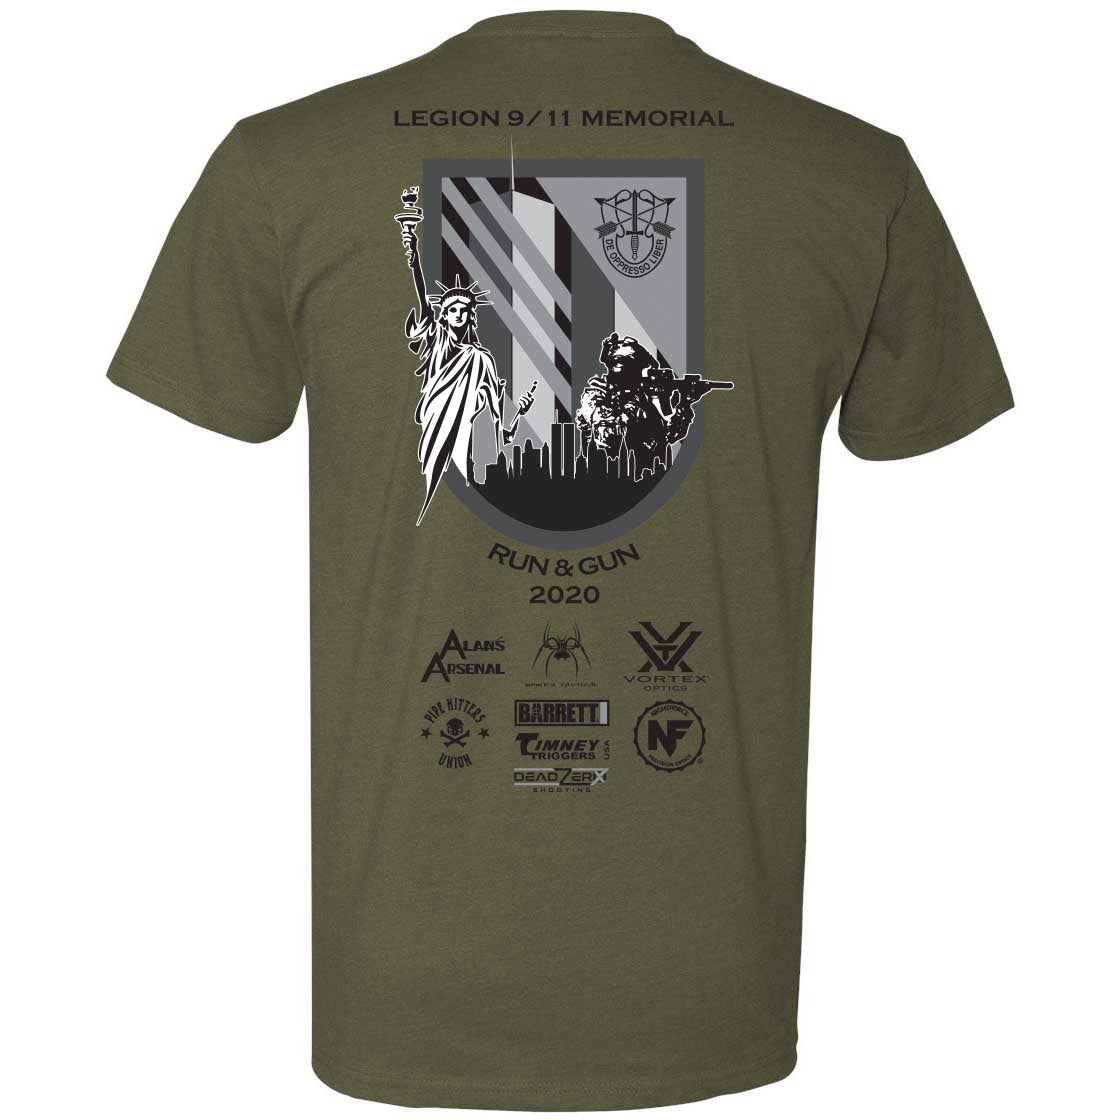 Legion 9/11 Memorial Run & Gun - Military Green - T-Shirts - Pipe Hitters Union